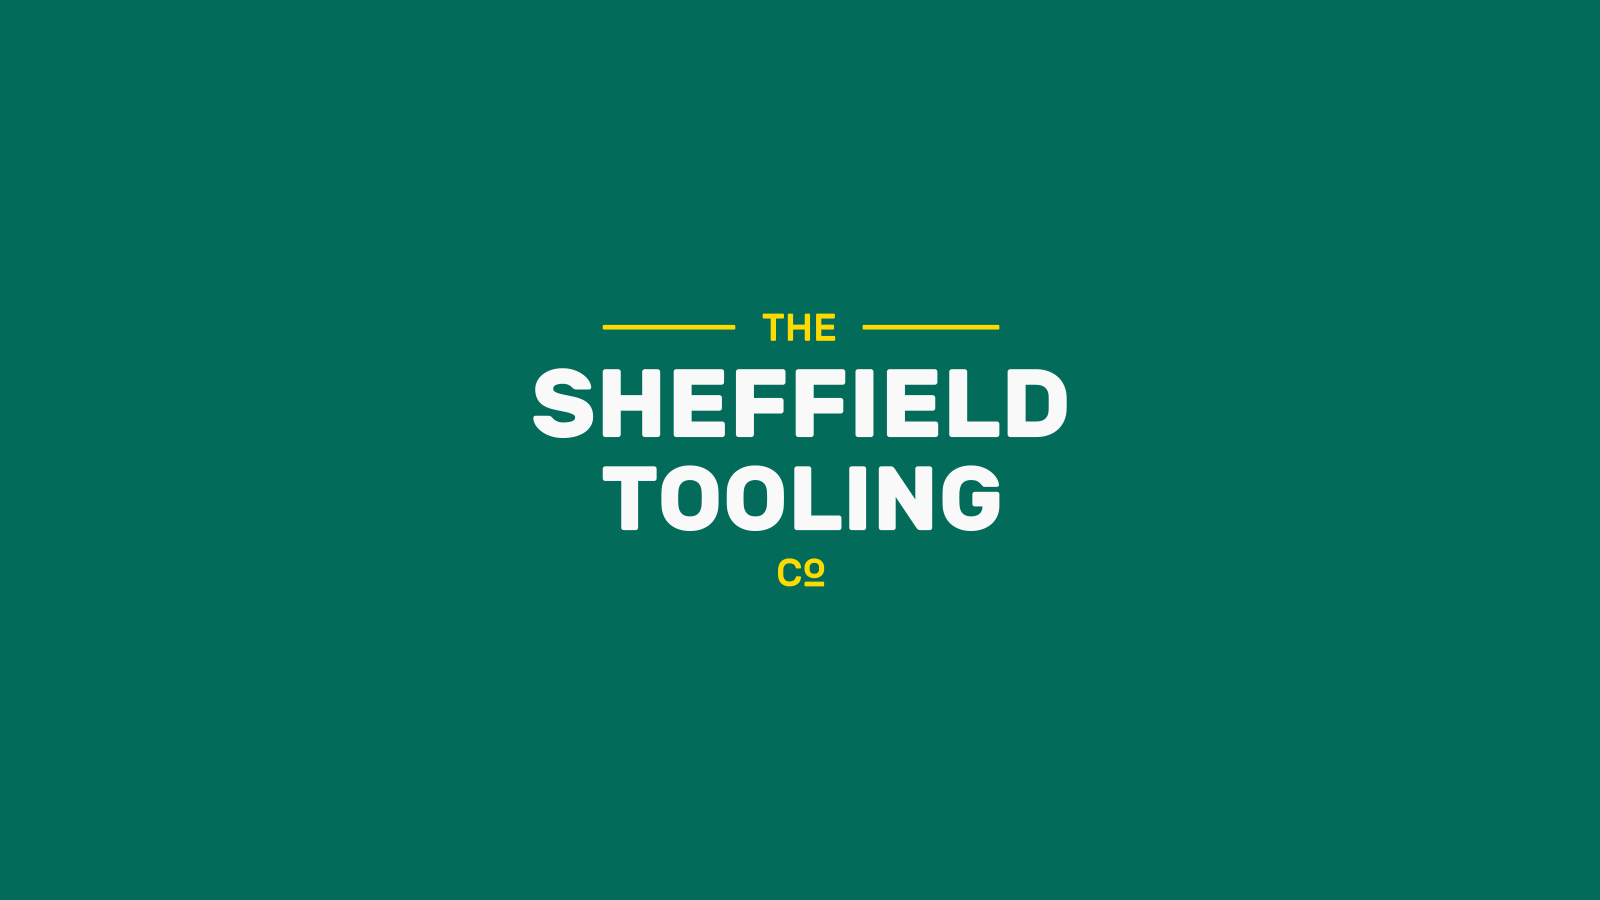 Sheffield Tooling Company Branding Design